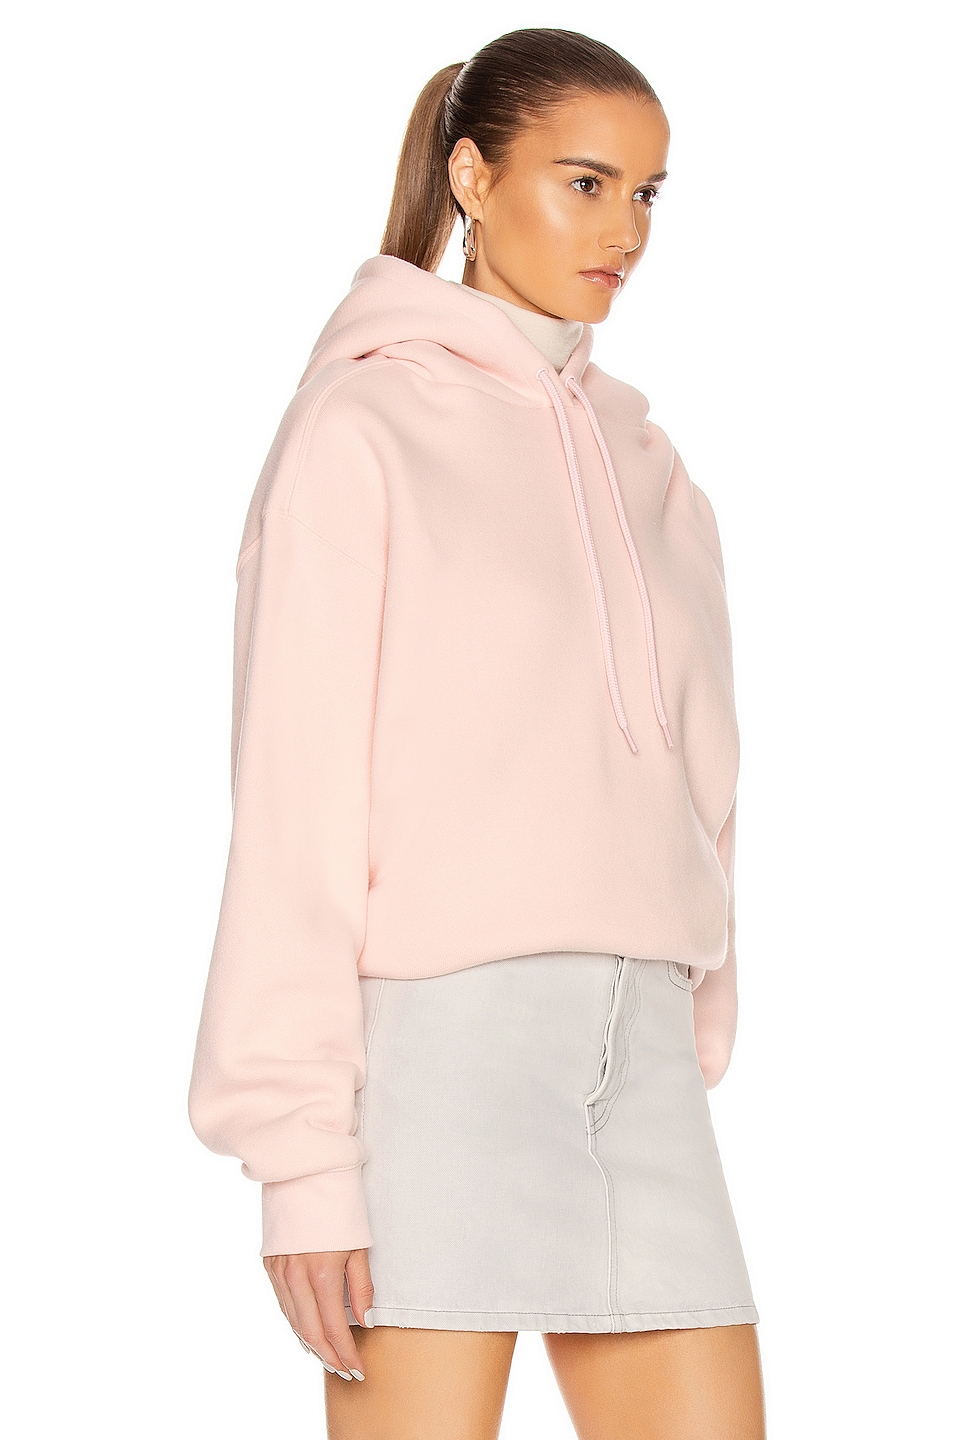 Image 2 of T by Alexander Wang Puff Paint Bubble Hoodie in Light Melon